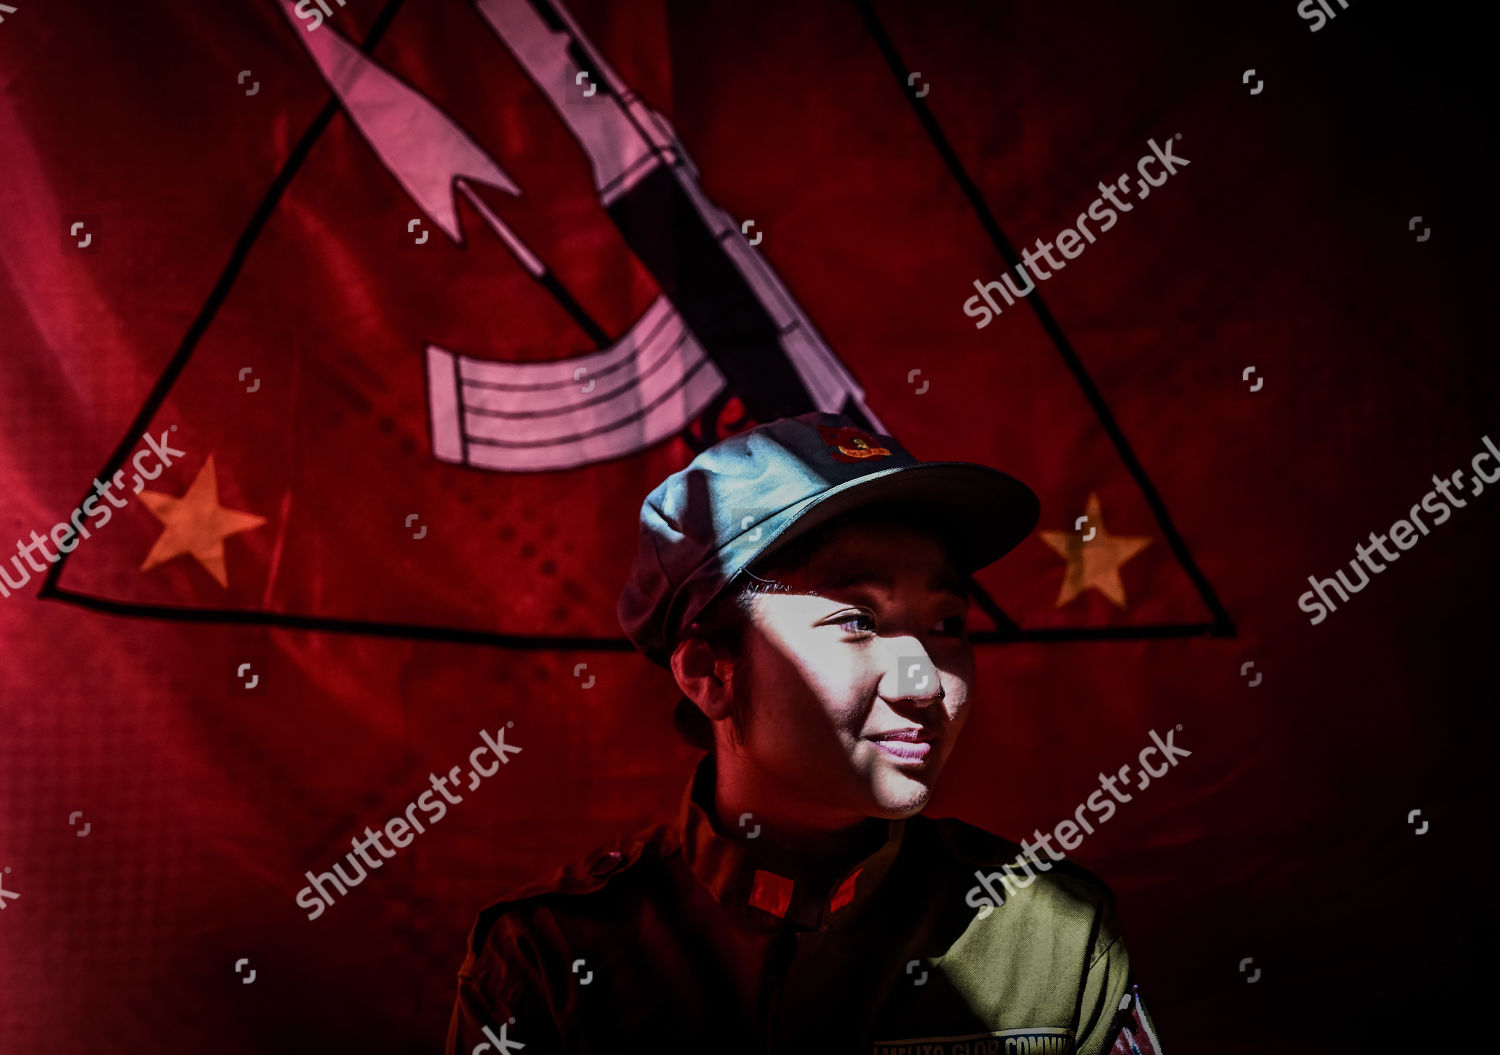 bcf255d52fe Stock photo of Communist rebels celebrate the 50th founding anniversary of  the Communist Party of the